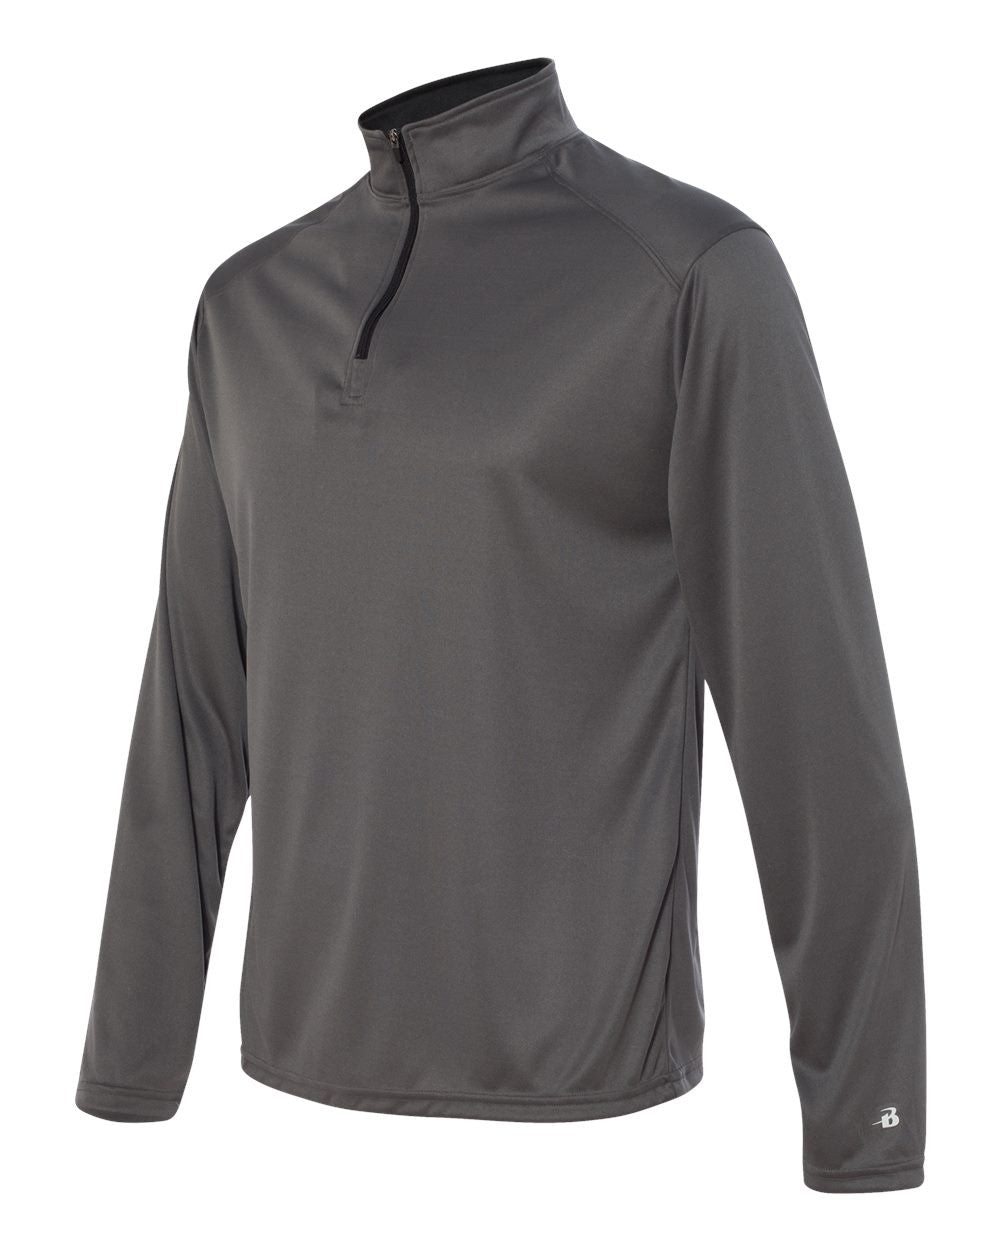 Quarter Zip pullover by Badger